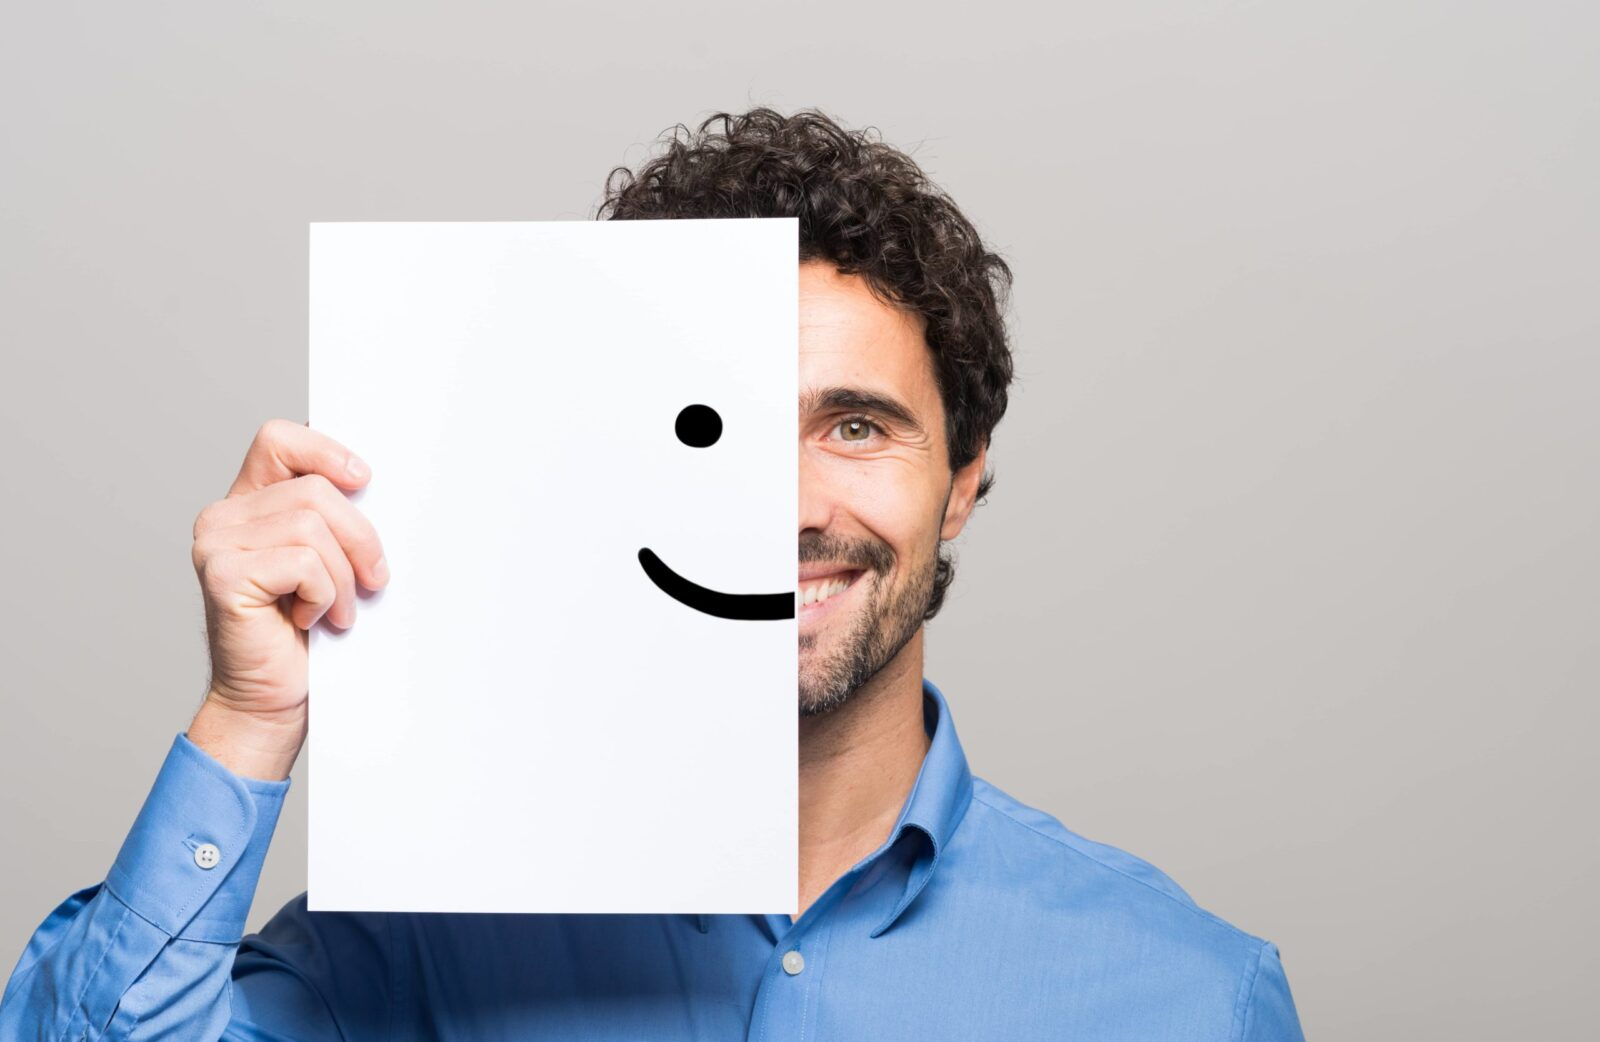 Man Holding a Smiley Face on Paper in Front of his Face